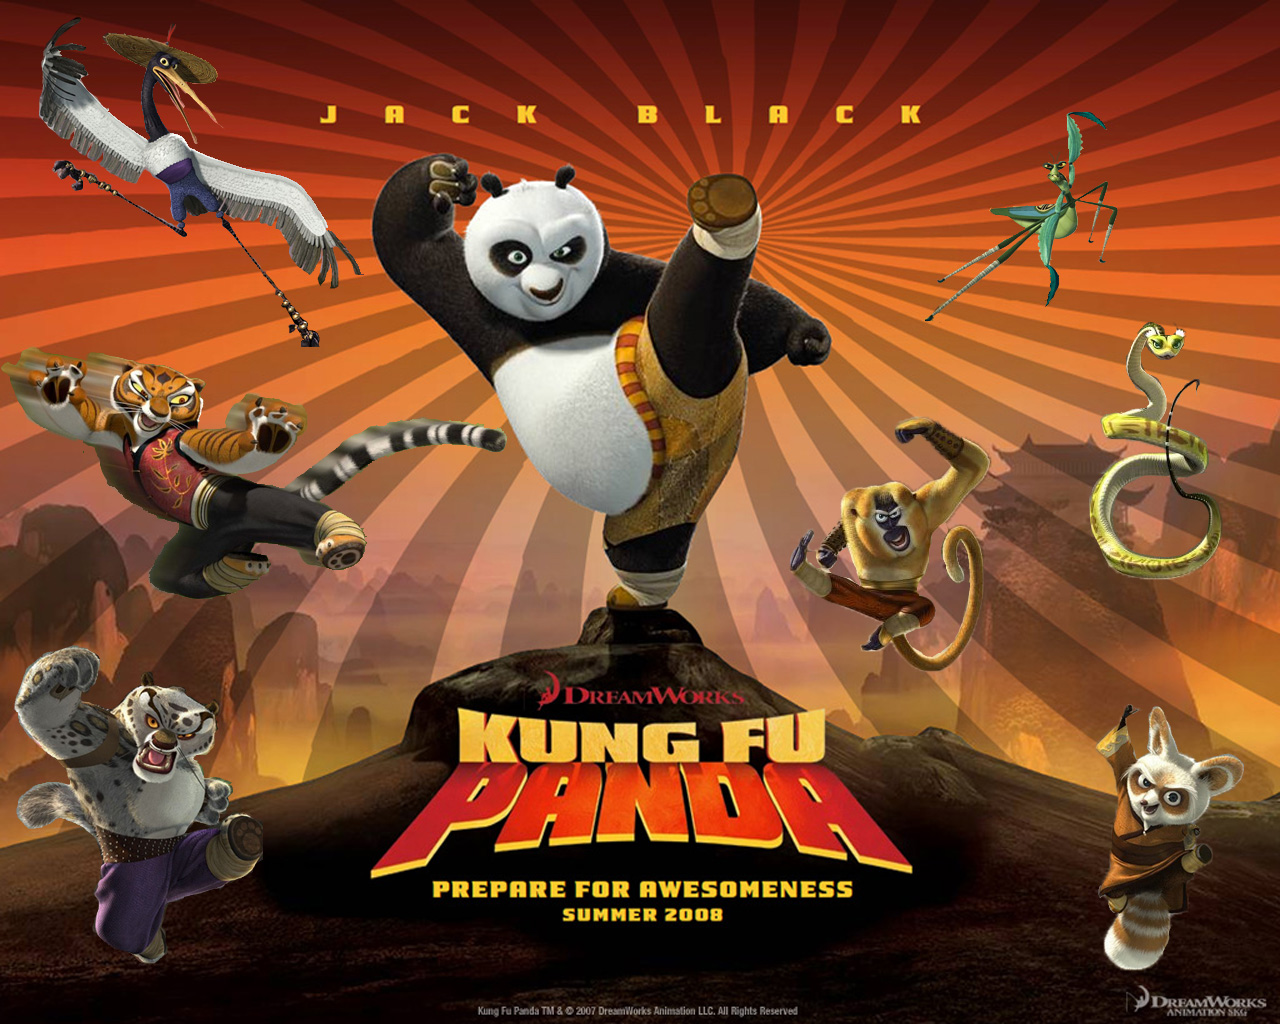 Kung fu panda iphone wallpaper - Po And Cast From Kung Fu Panda Movie Wallpaper Click Picture For High Resolution Hd Wallpaper